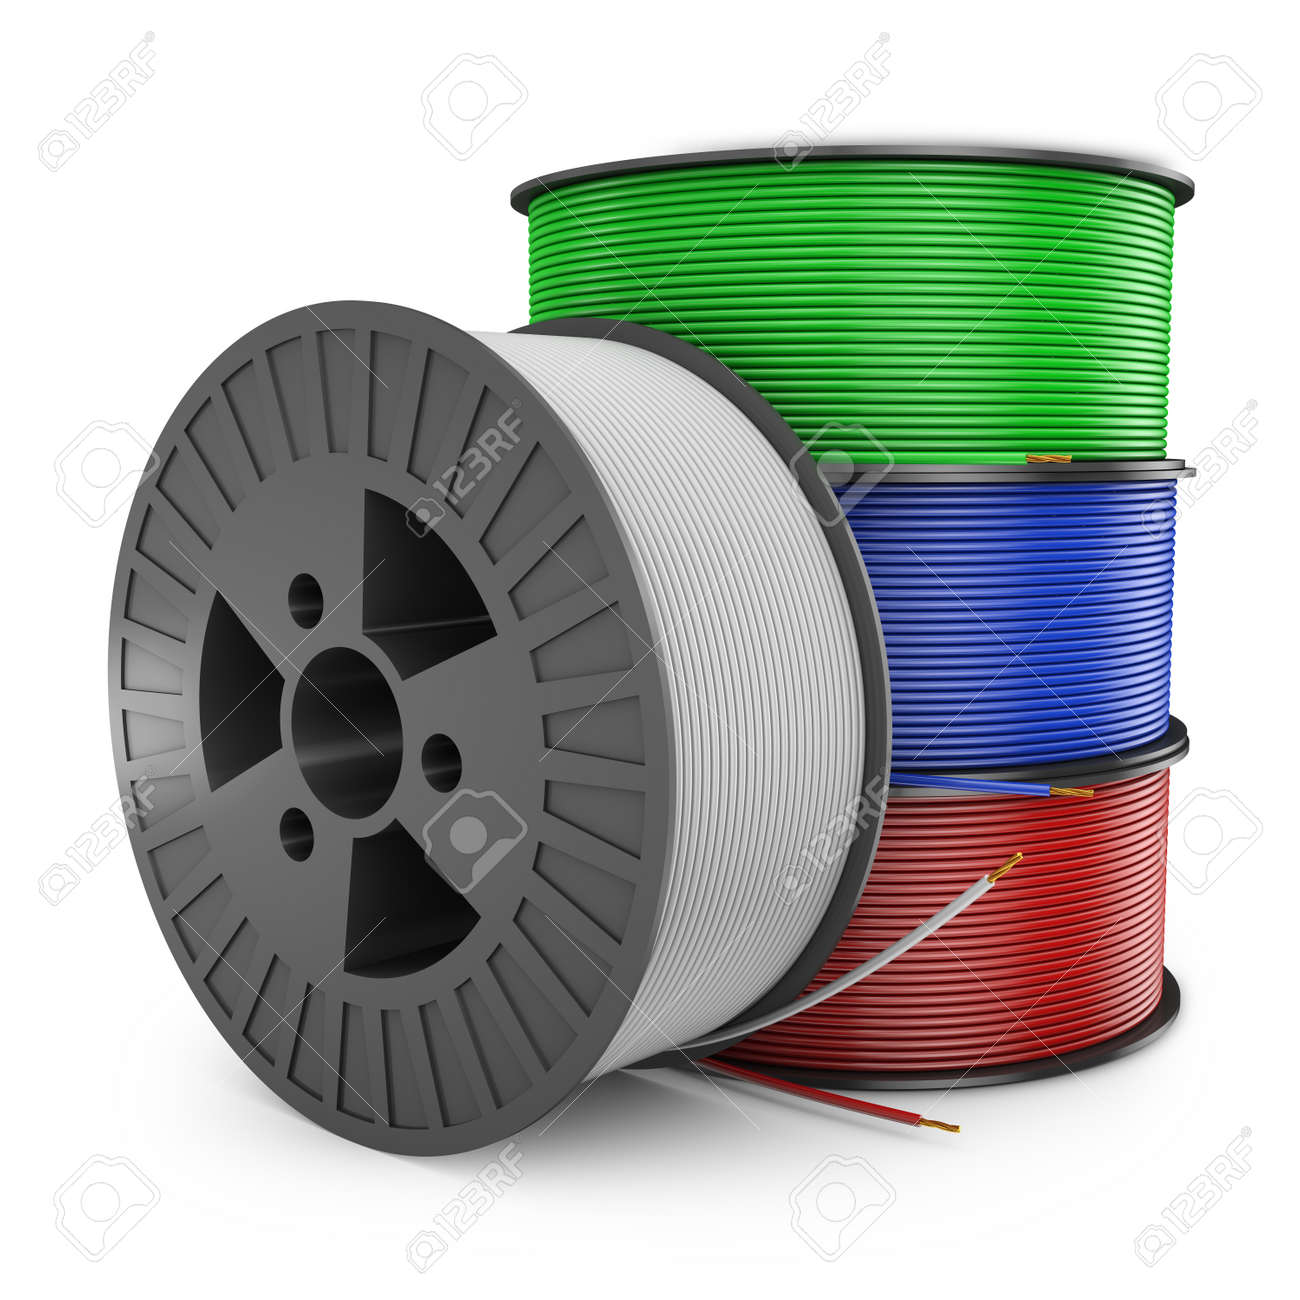 Four Plastic Reel With Colored Wires, 3d Render Stock Photo, Picture ...